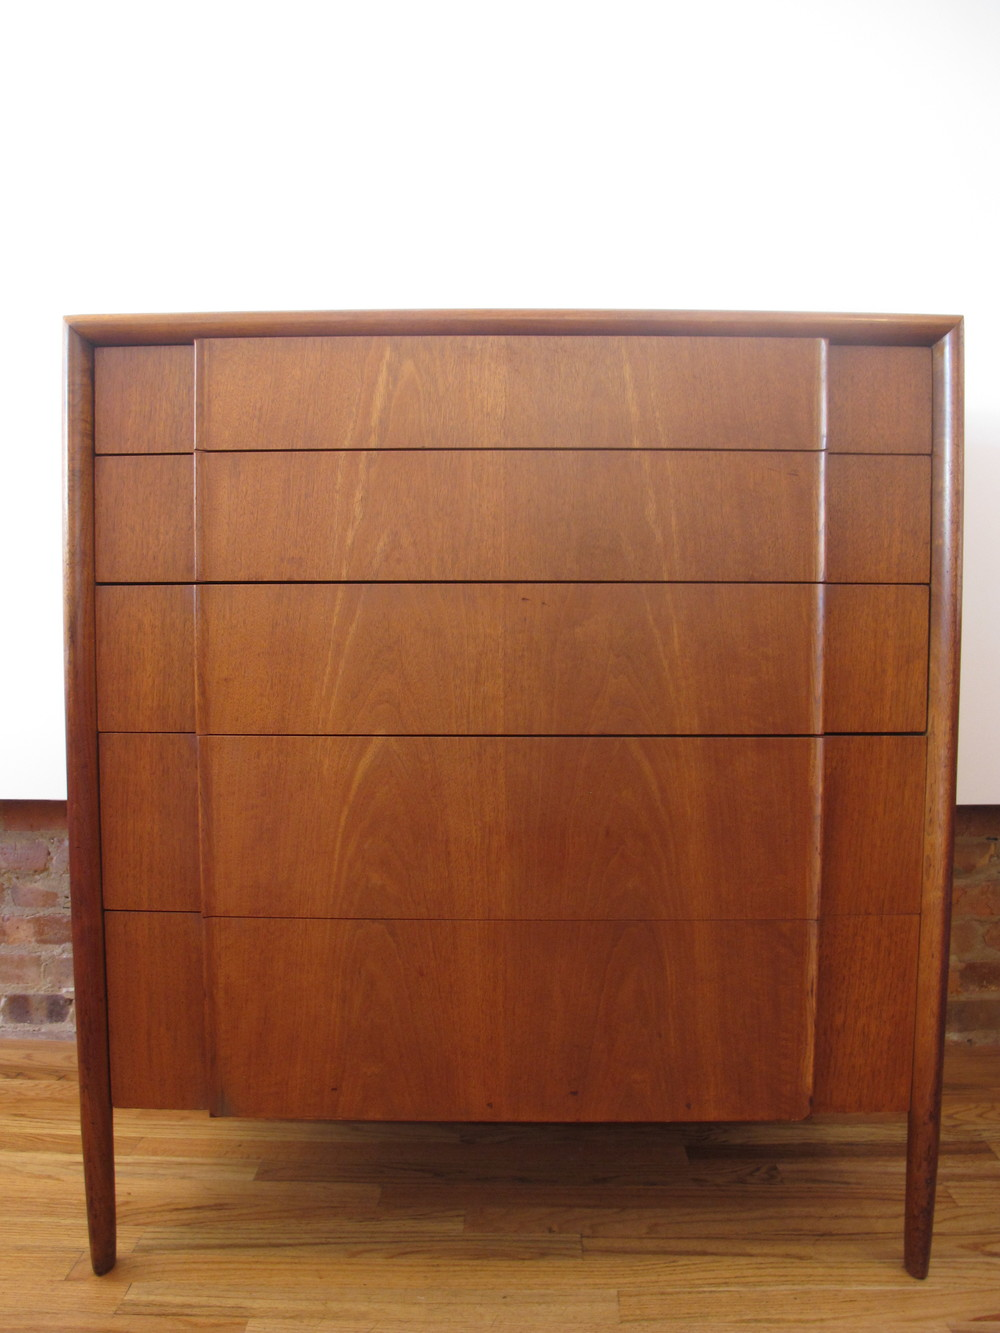 DREXEL PARALLEL TALL DRESSER